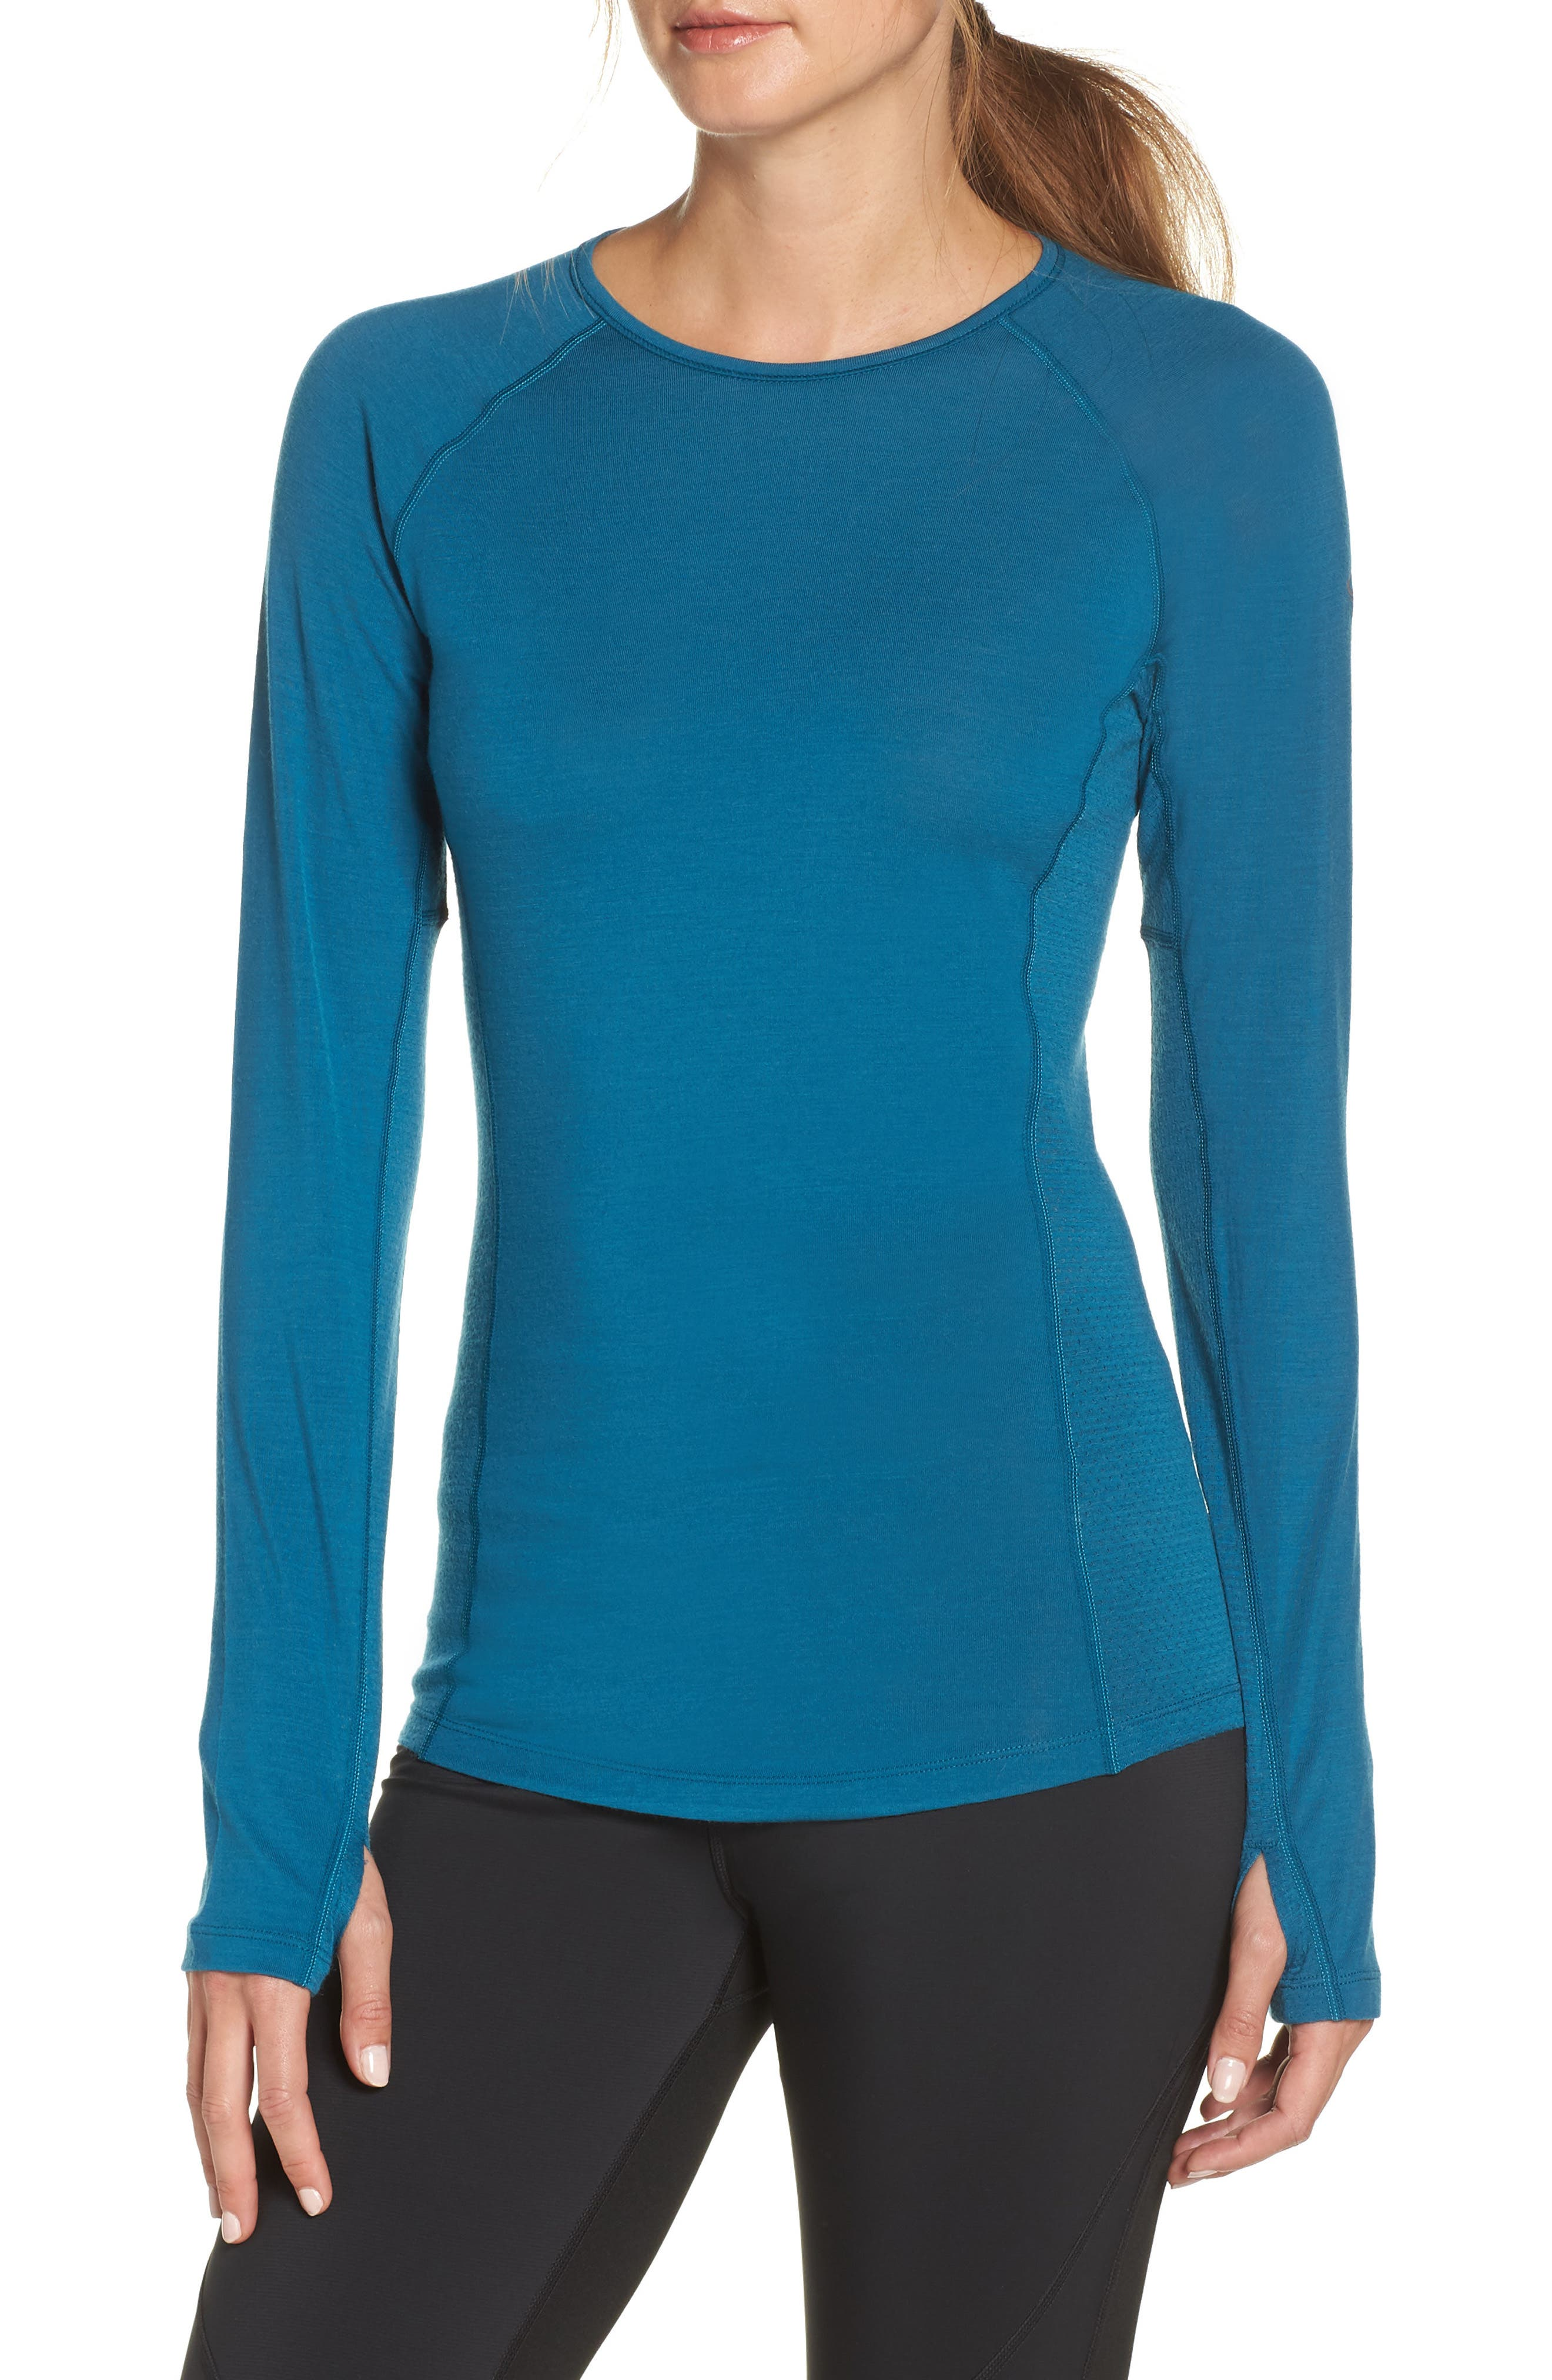 BodyfitZONE<sup>™</sup> 150 Zone Merino Wool Blend Base Layer Tee,                             Main thumbnail 1, color,                             KING FISCHER/ ARCTIC TEAL